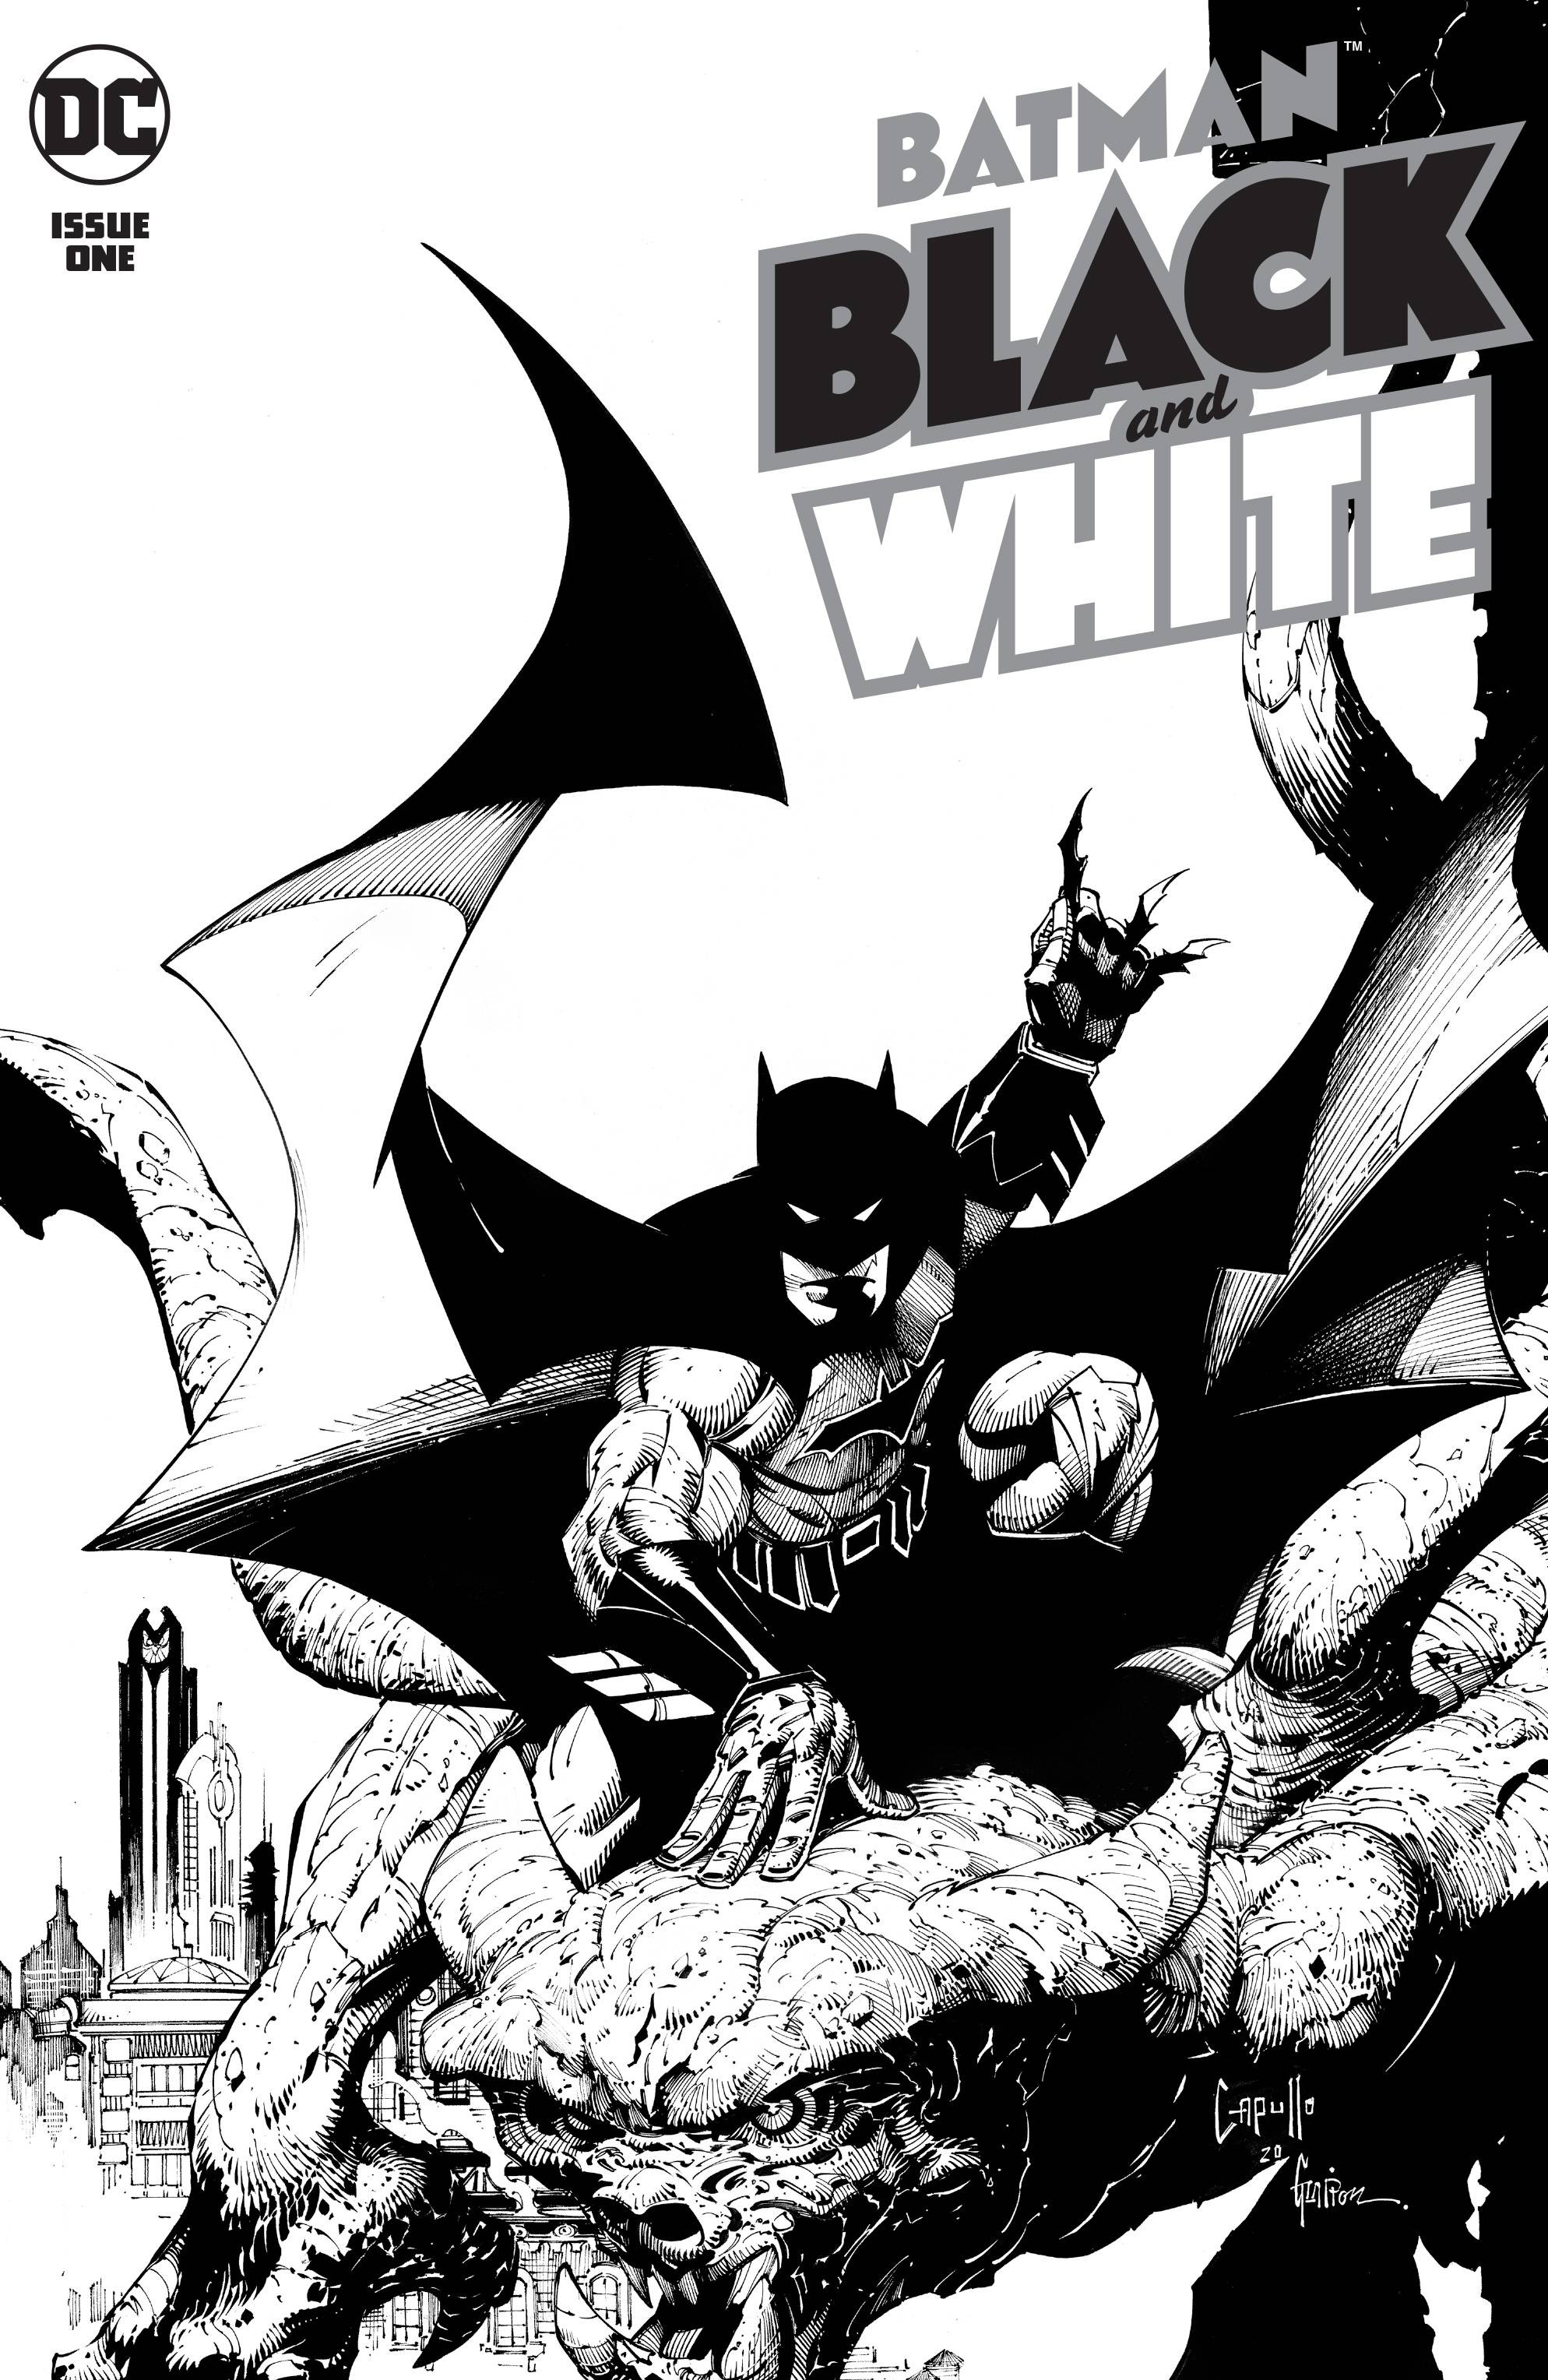 BATMAN BLACK AND WHITE #1 (OF 6)